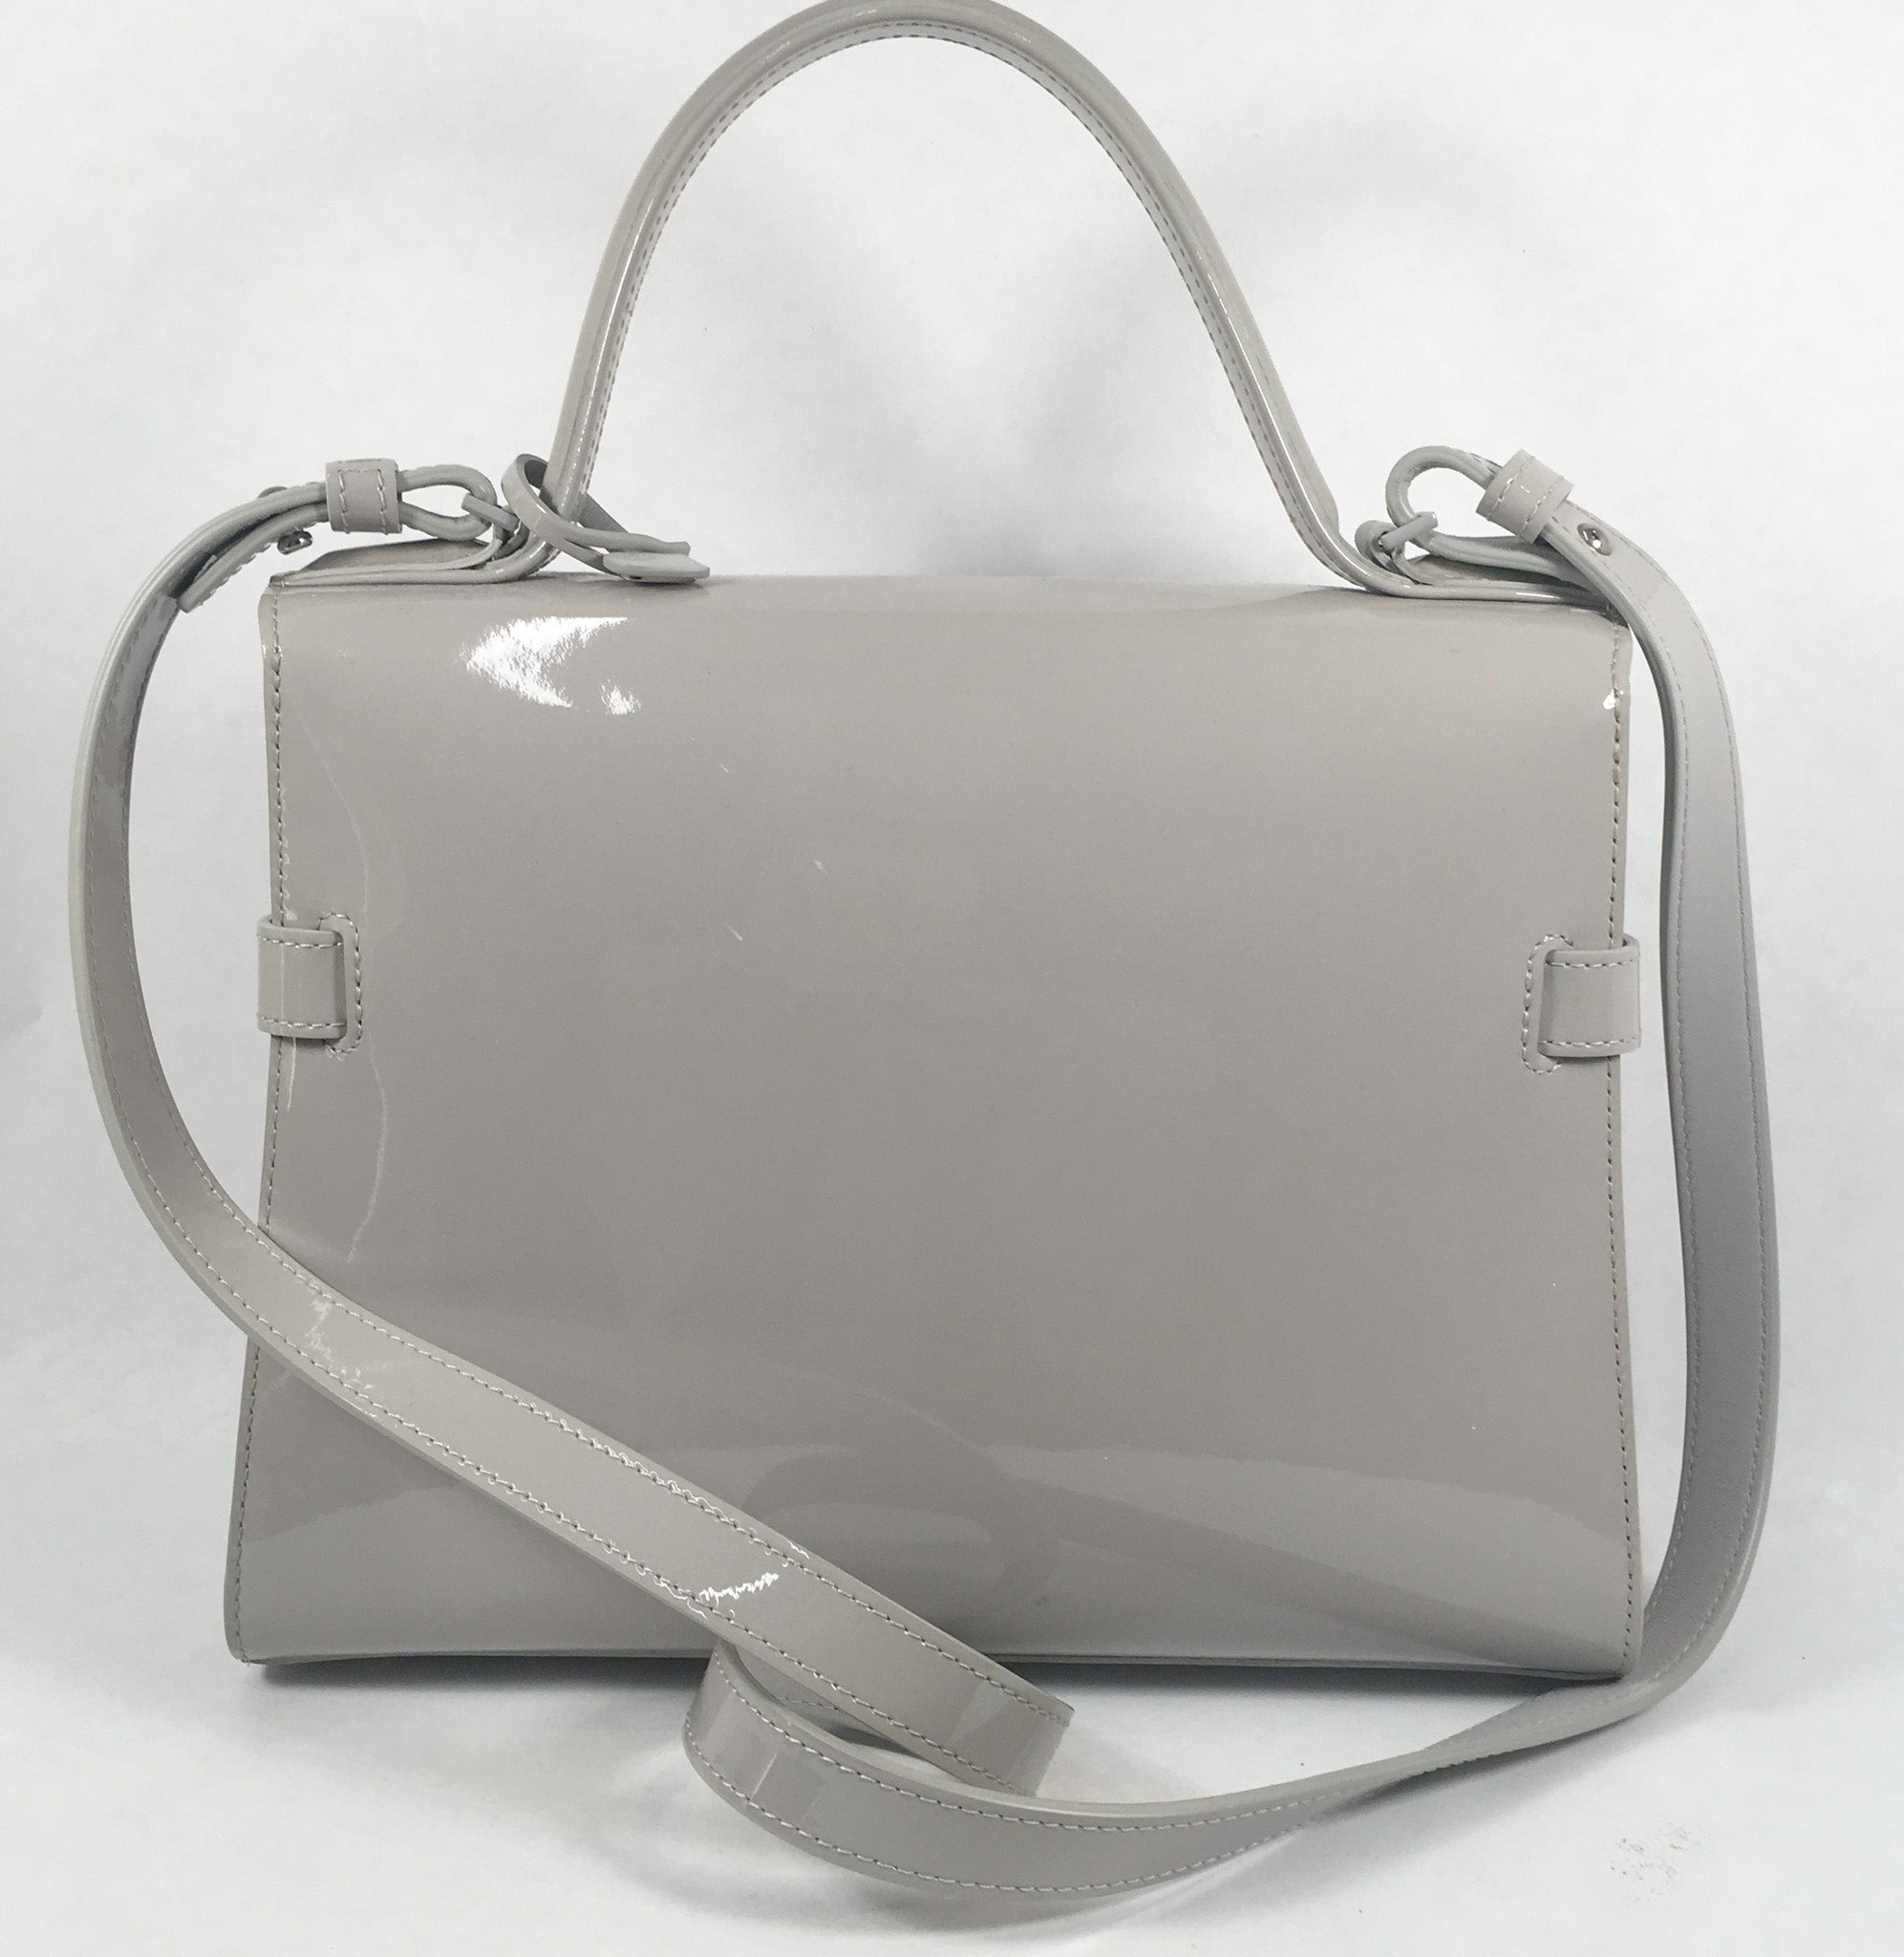 Delveaux Grey Tempete Bag